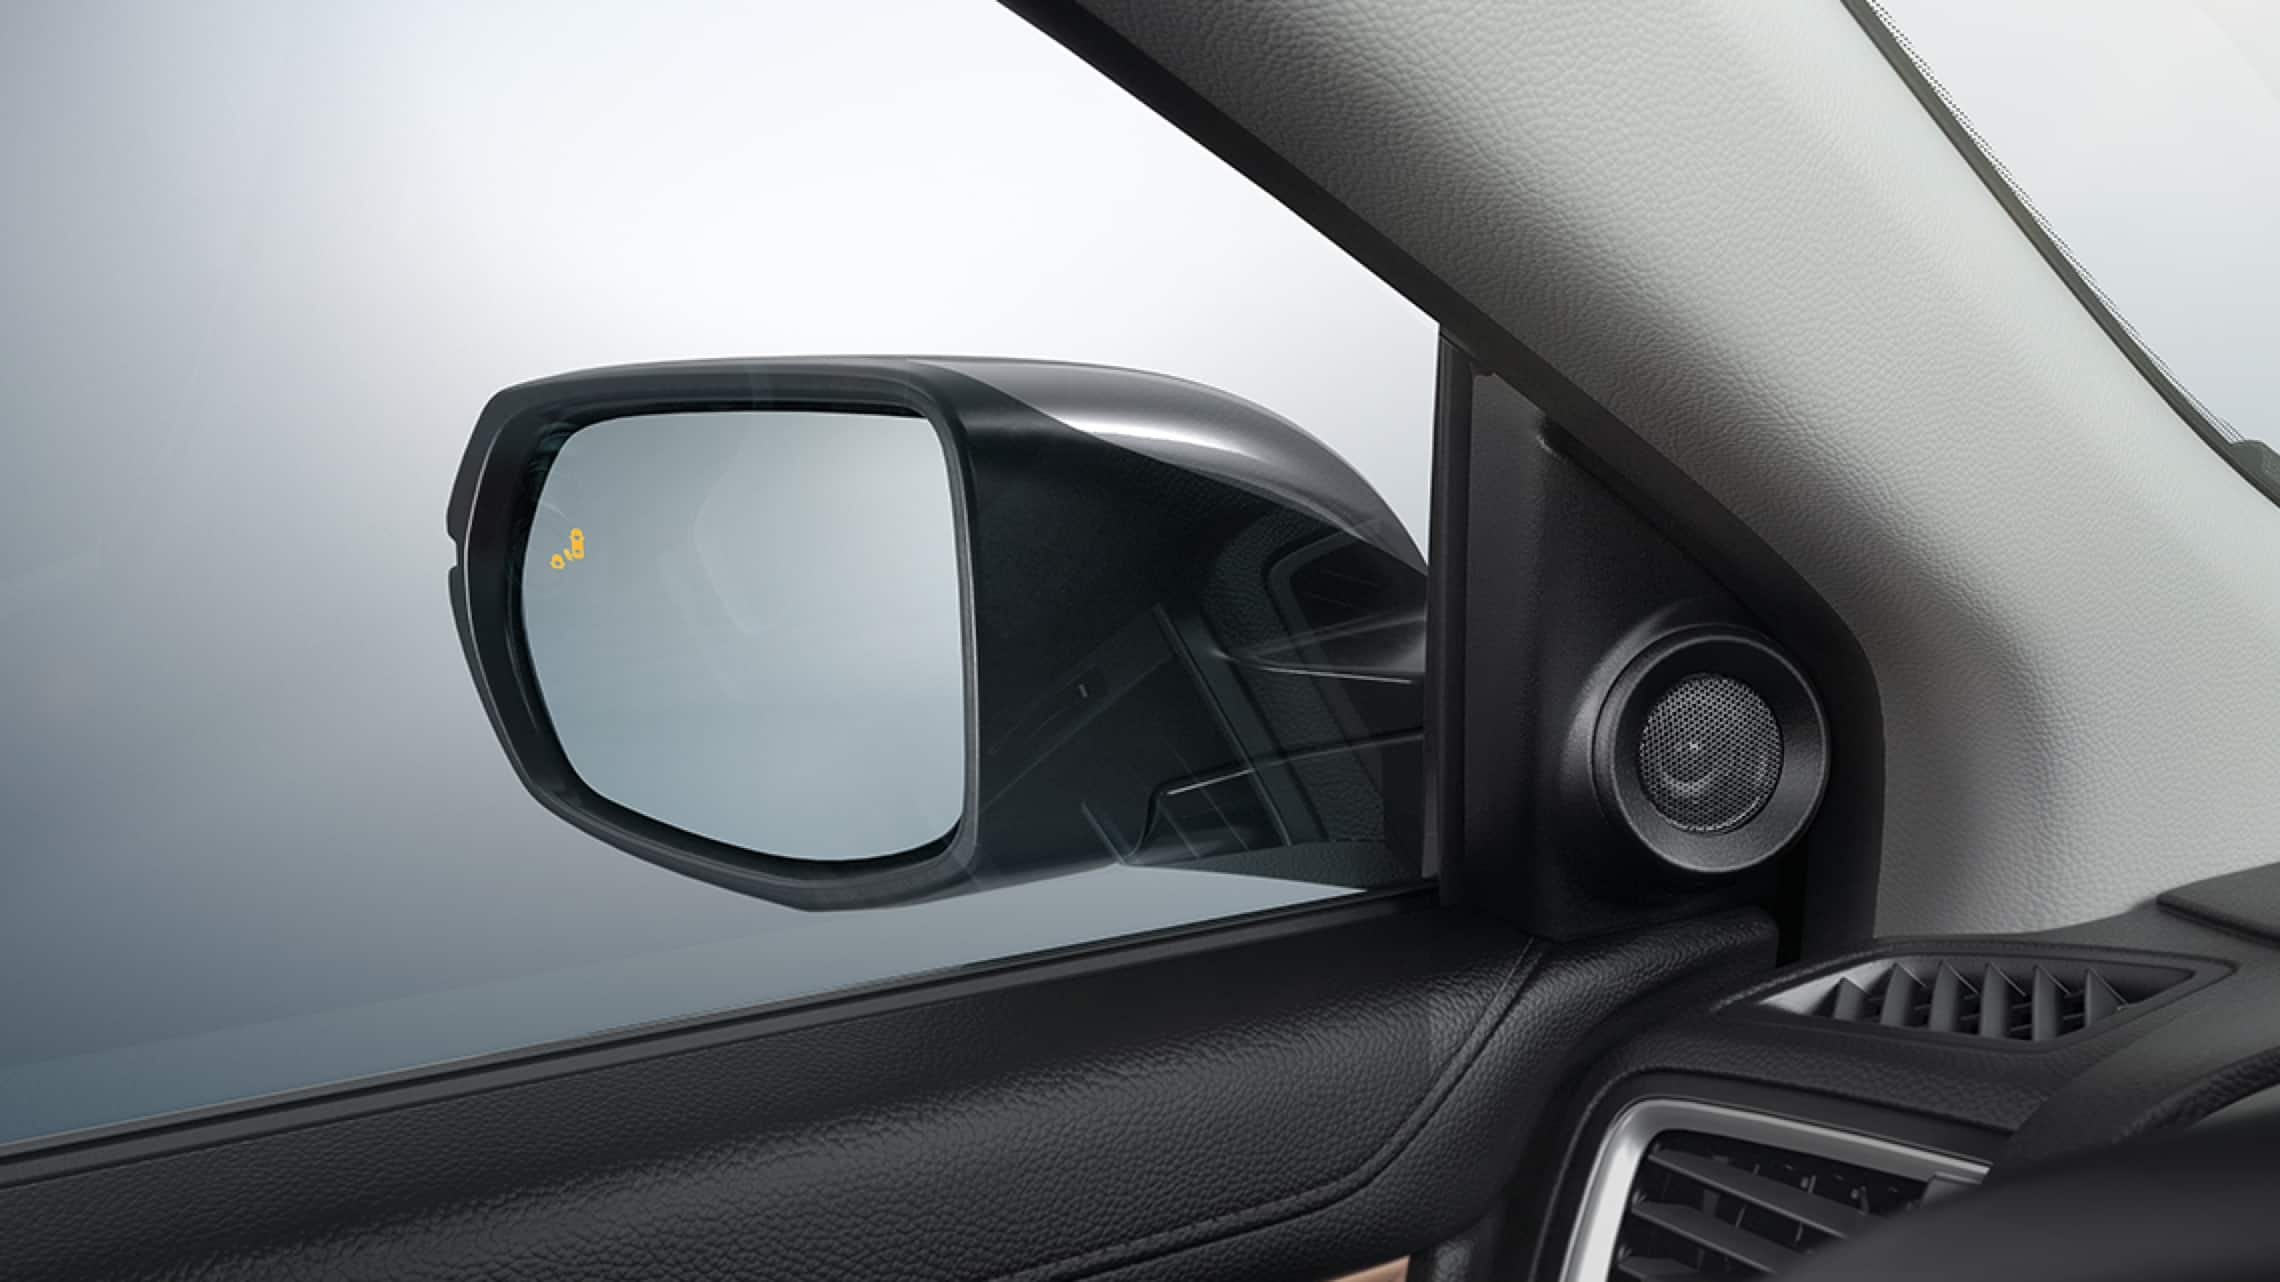 2019 Honda CR-V Touring with Blind Spot Information system warning icon on side mirror.